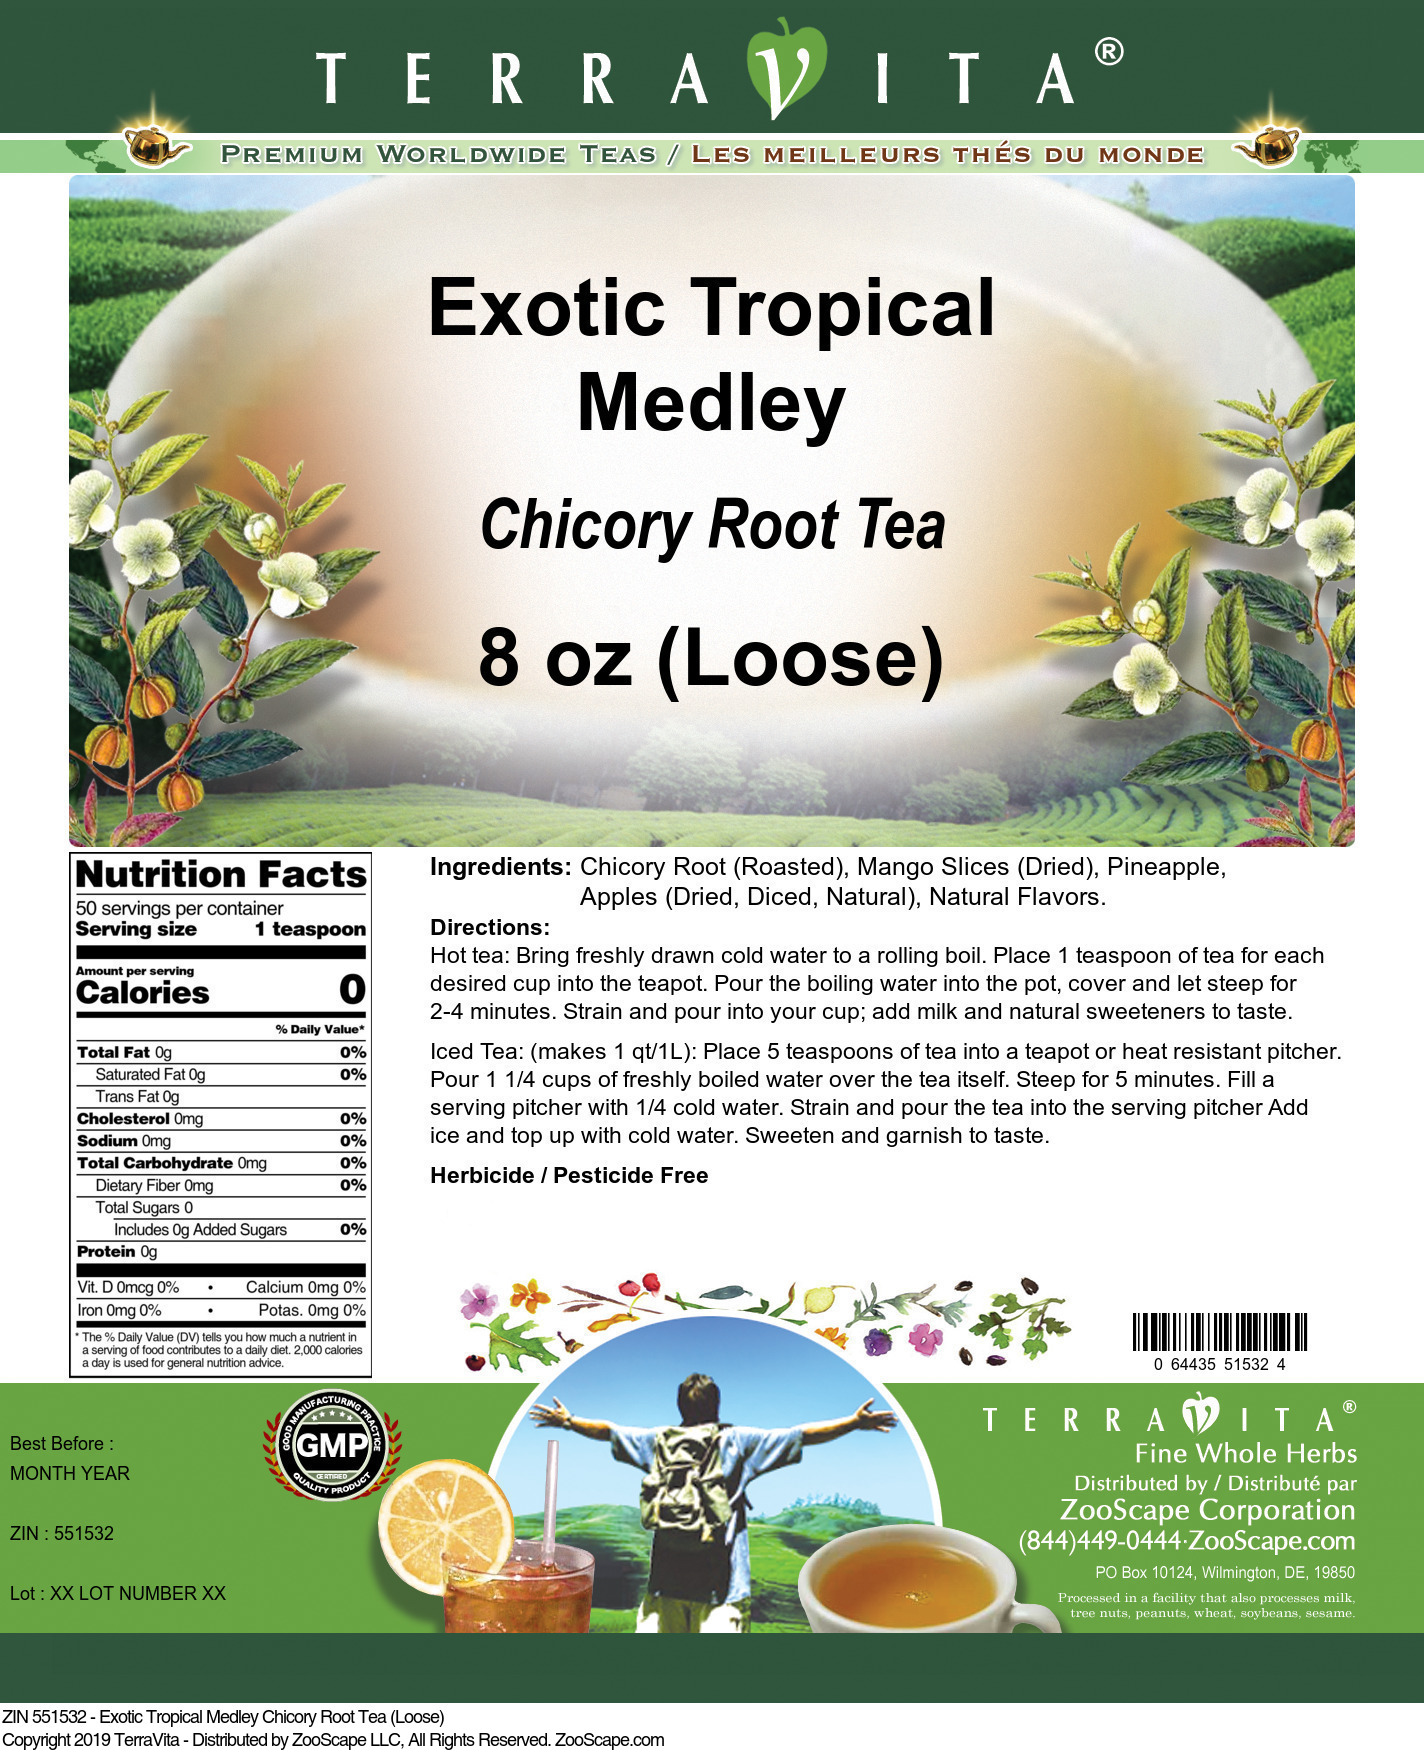 Exotic Tropical Medley Chicory Root Tea (Loose)